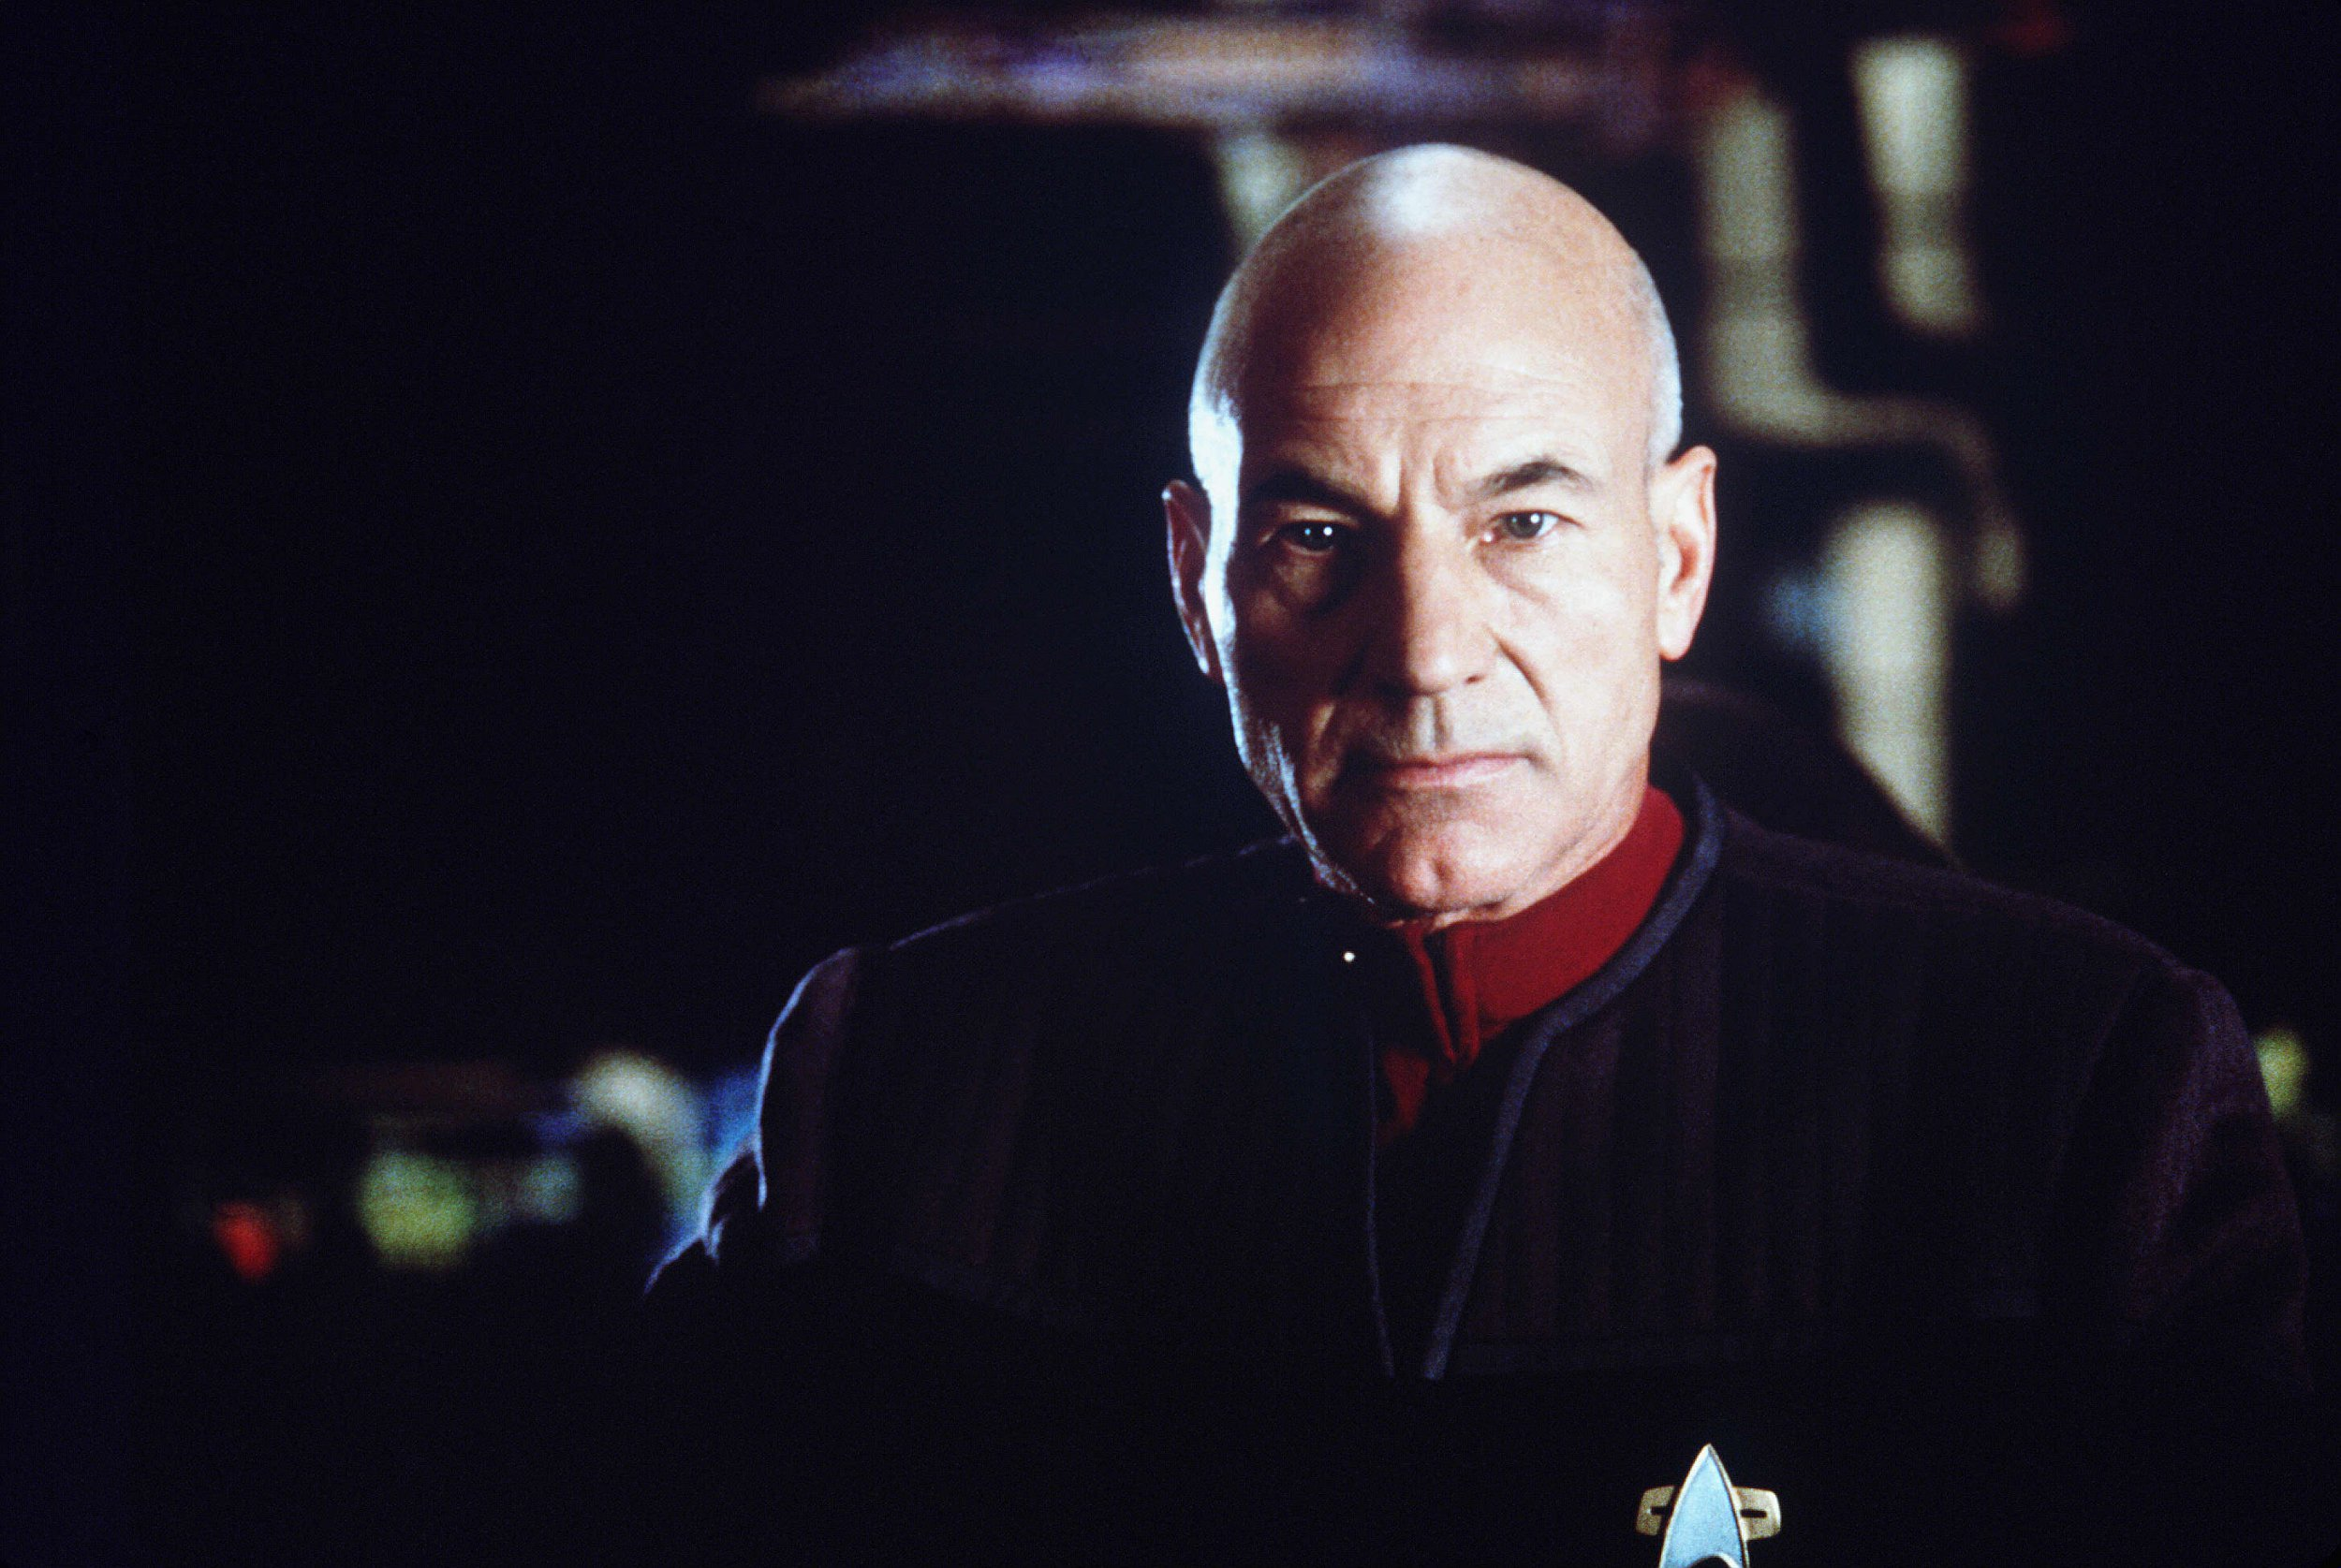 Editorial use only. No book cover usage. Mandatory Credit: Photo by Elliott Marks/Paramount/Kobal/REX/Shutterstock (5878596b) Patrick Stewart Star Trek - First Contact - 1996 Director: Jonathan Frakes Paramount USA Scene Still Scifi Star Trek: Premier contact